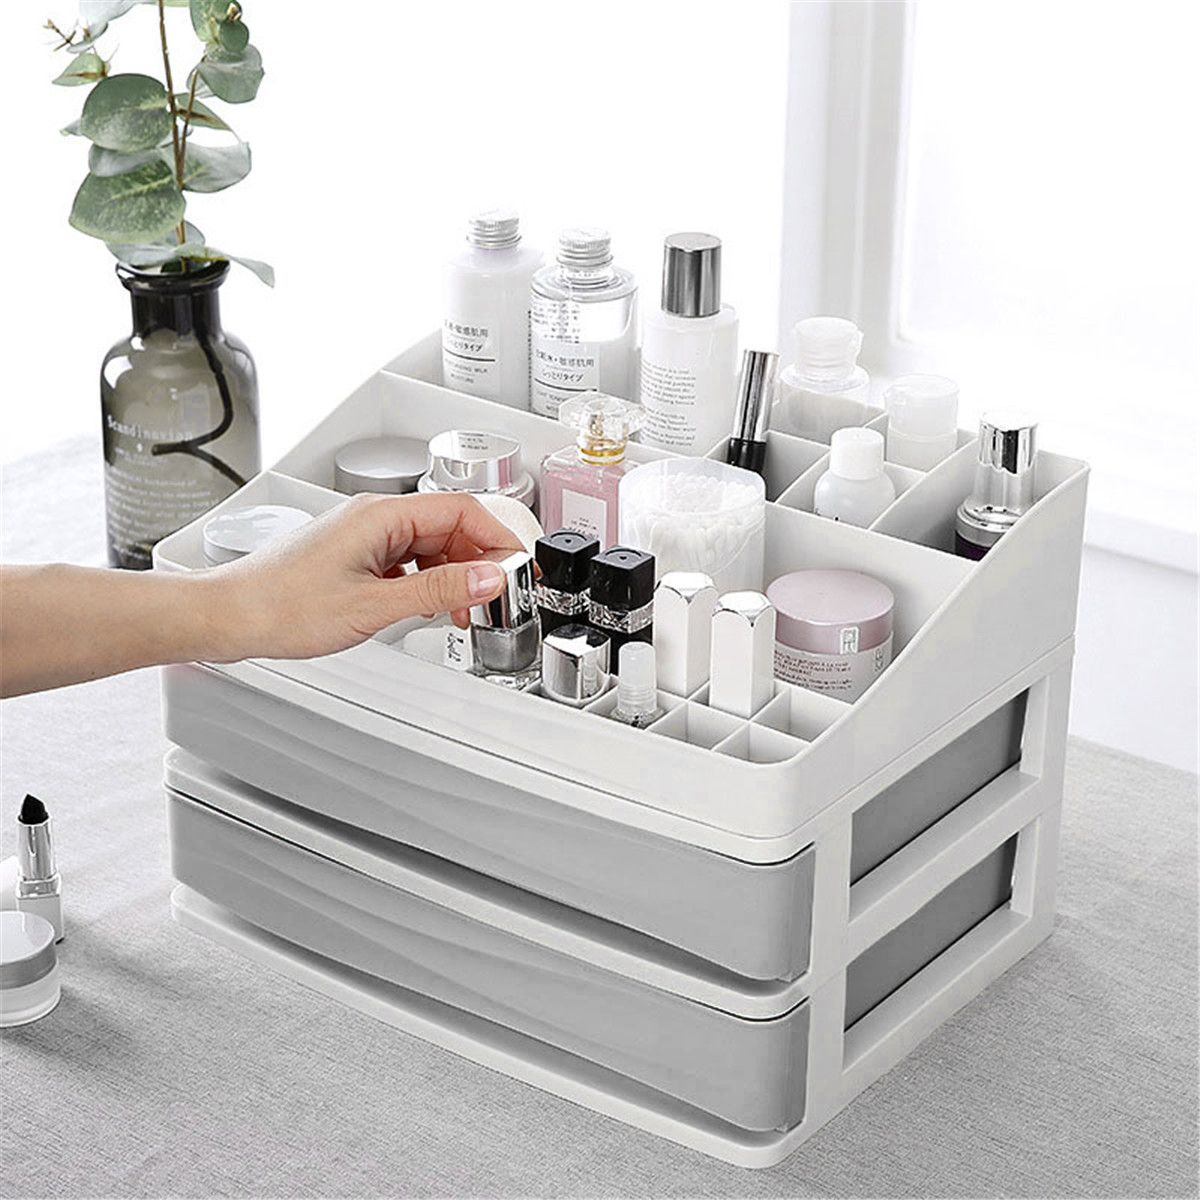 Beauty In 2020 Makeup Storage Drawers Makeup Storage Box